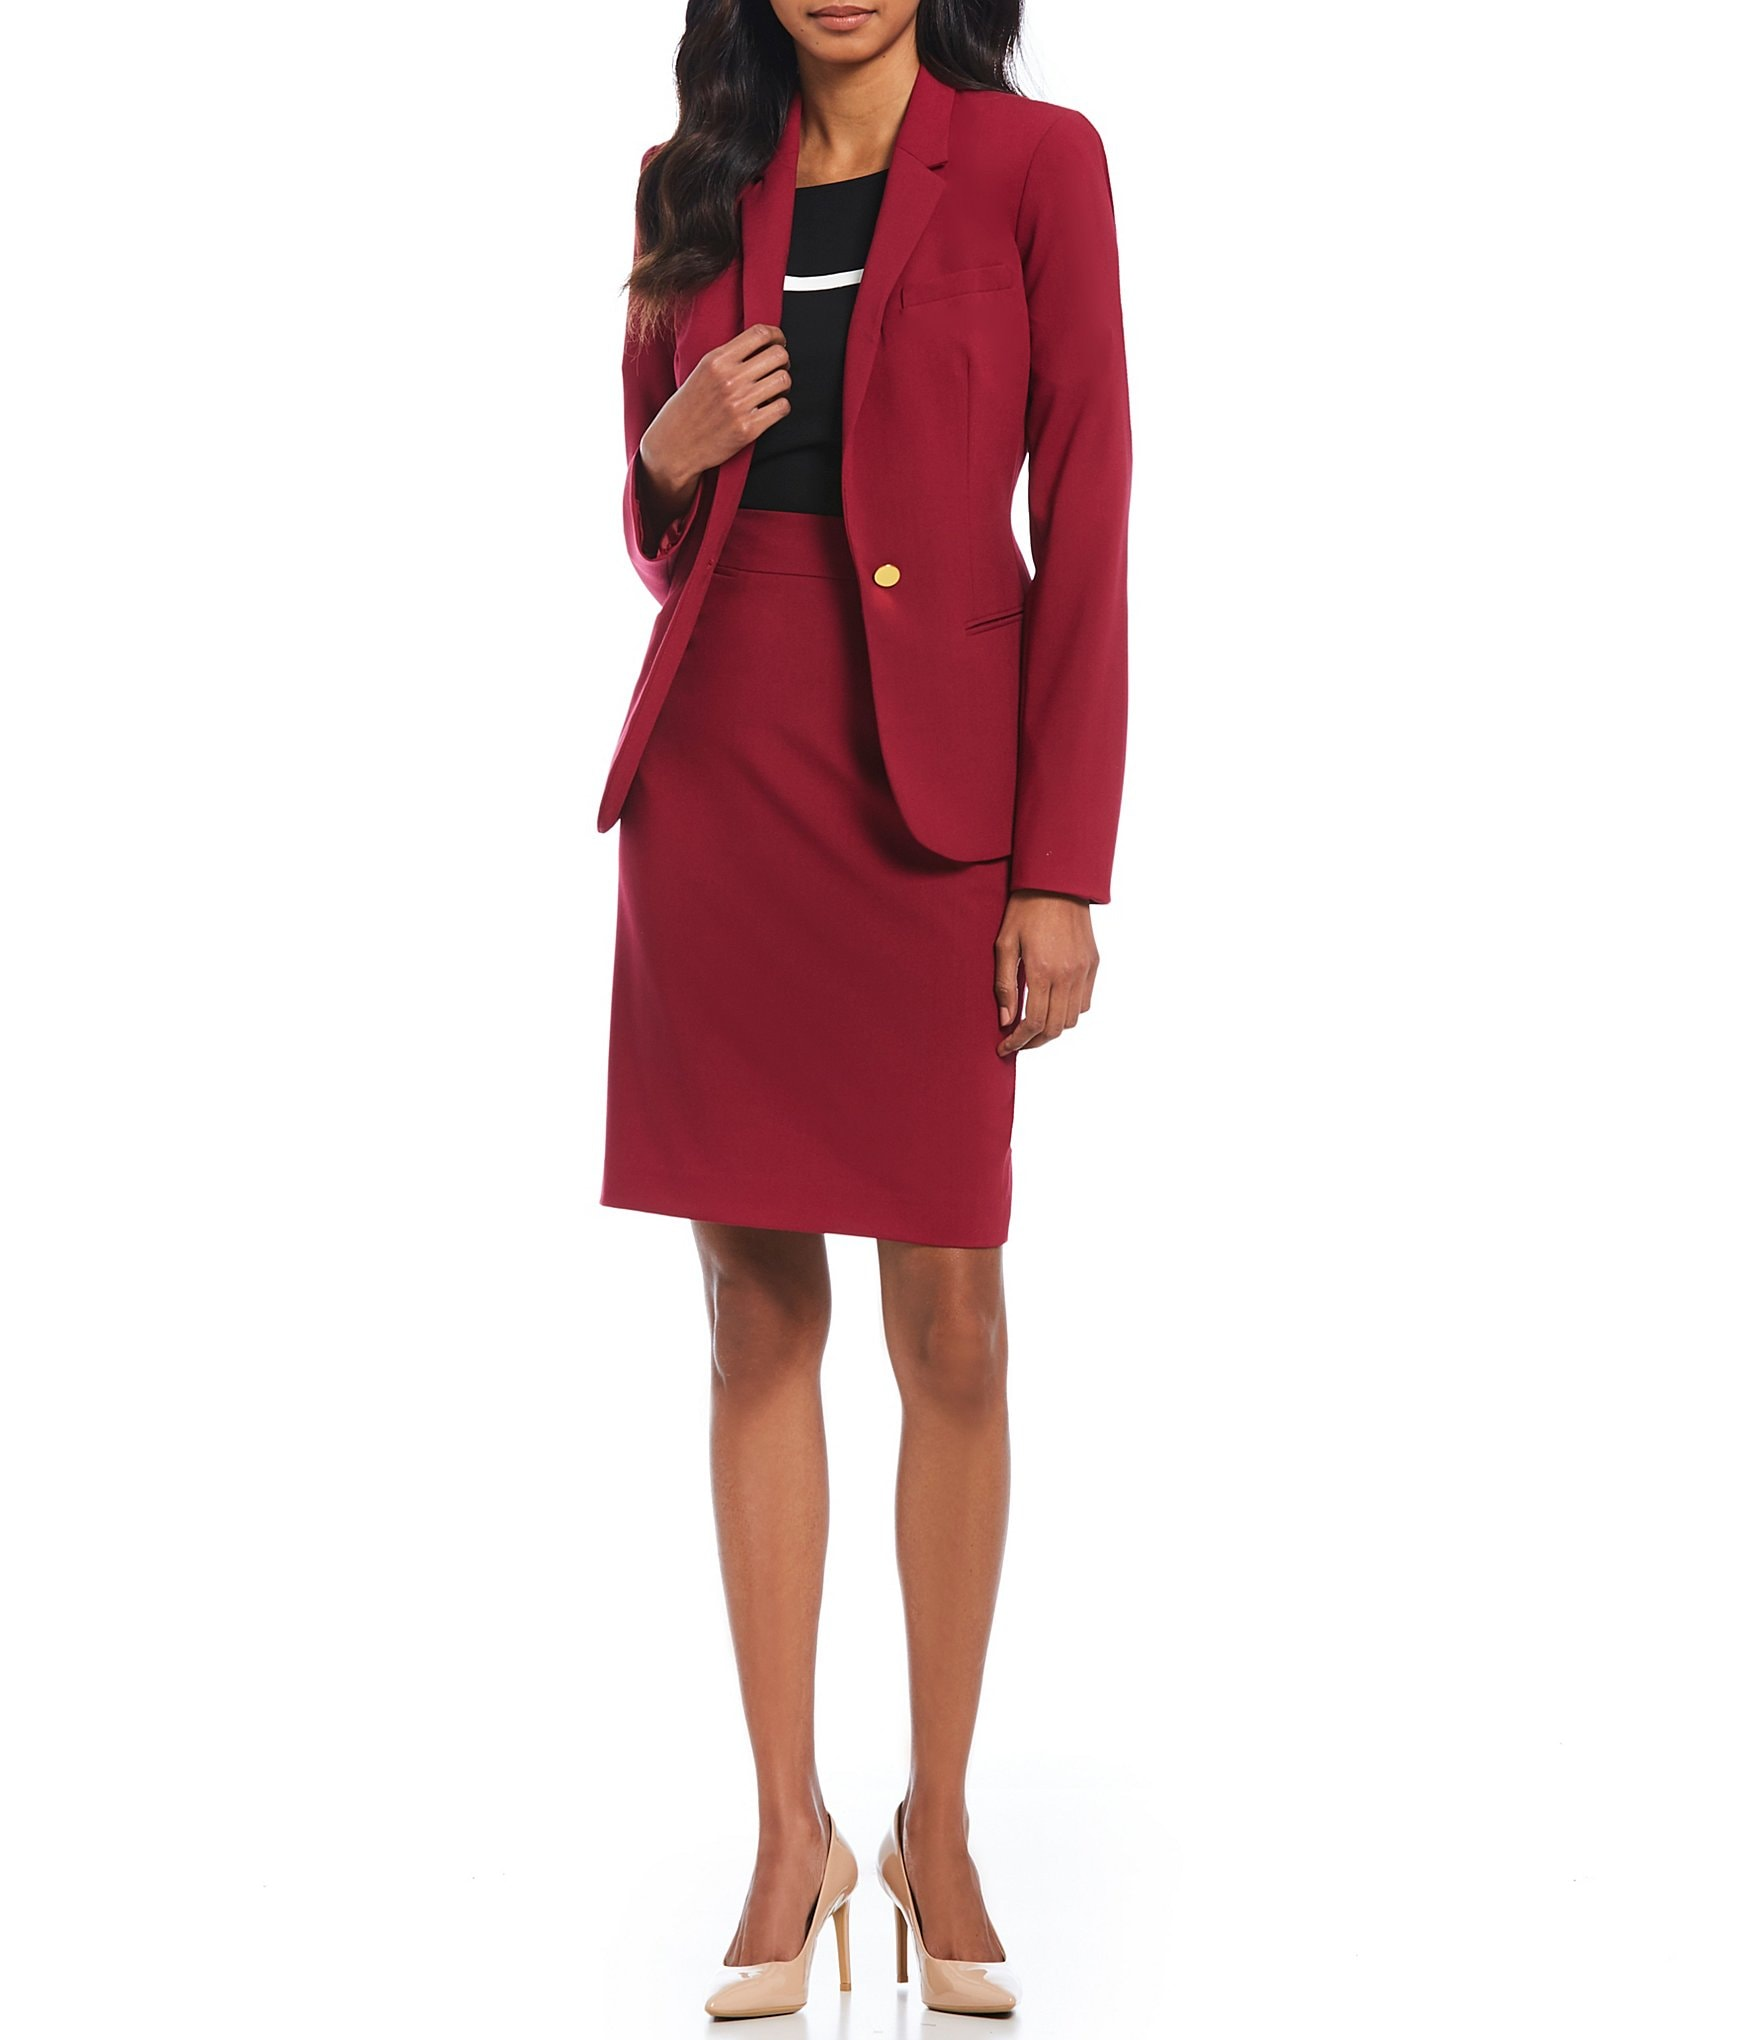 Red Jacket Women S Workwear Suits Office Attire Dillards Com